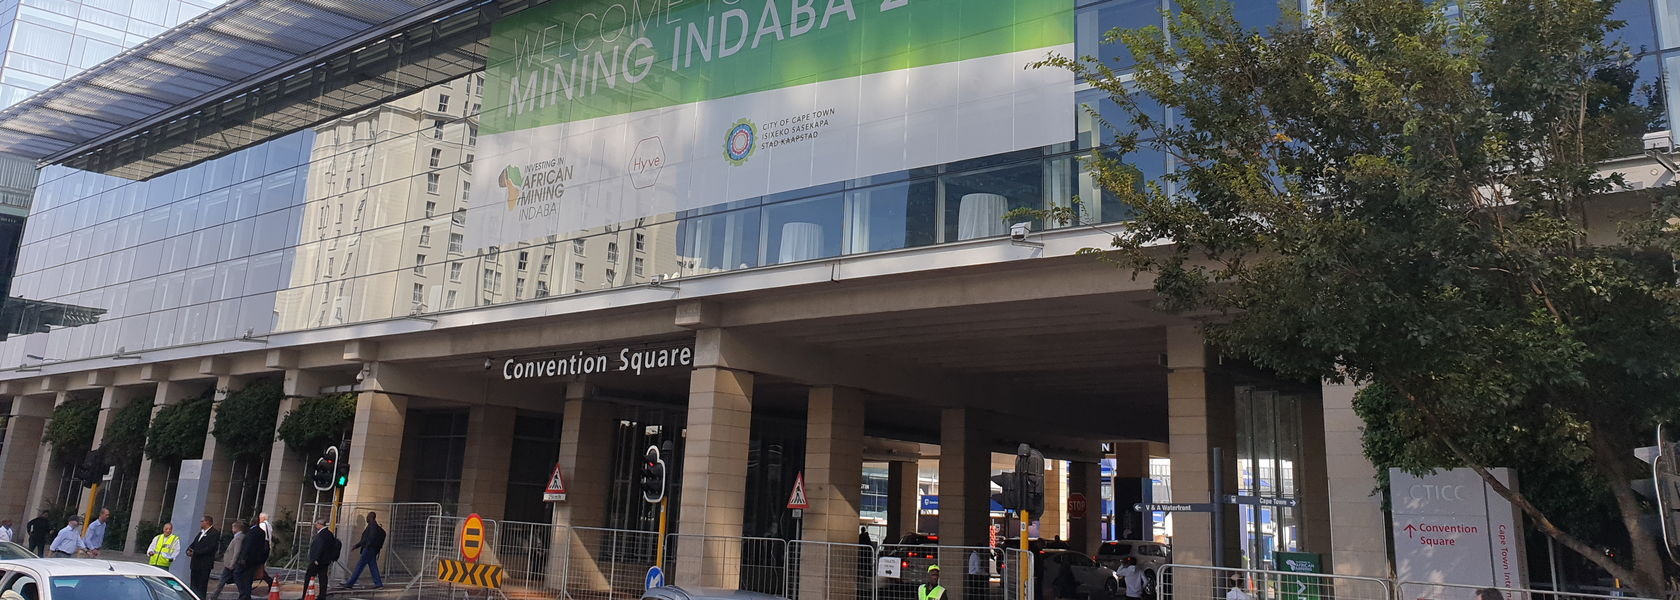 Letters from Indaba